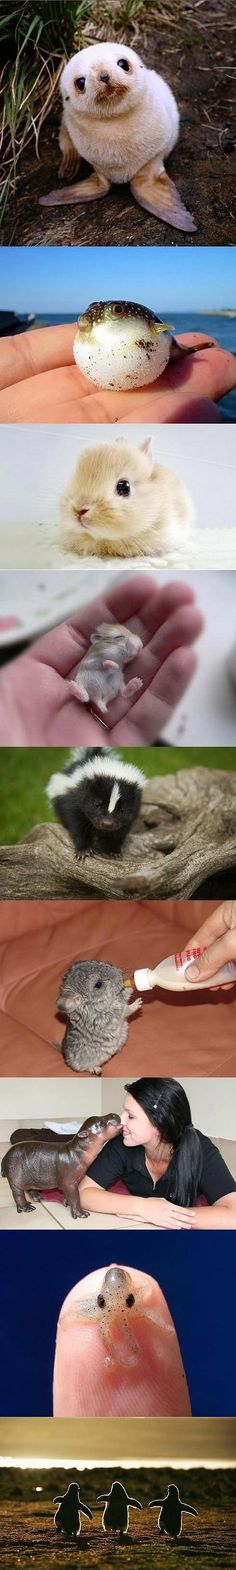 OMG. Adorable Precious Baby Animals  originally pinned via pinterest.com/...